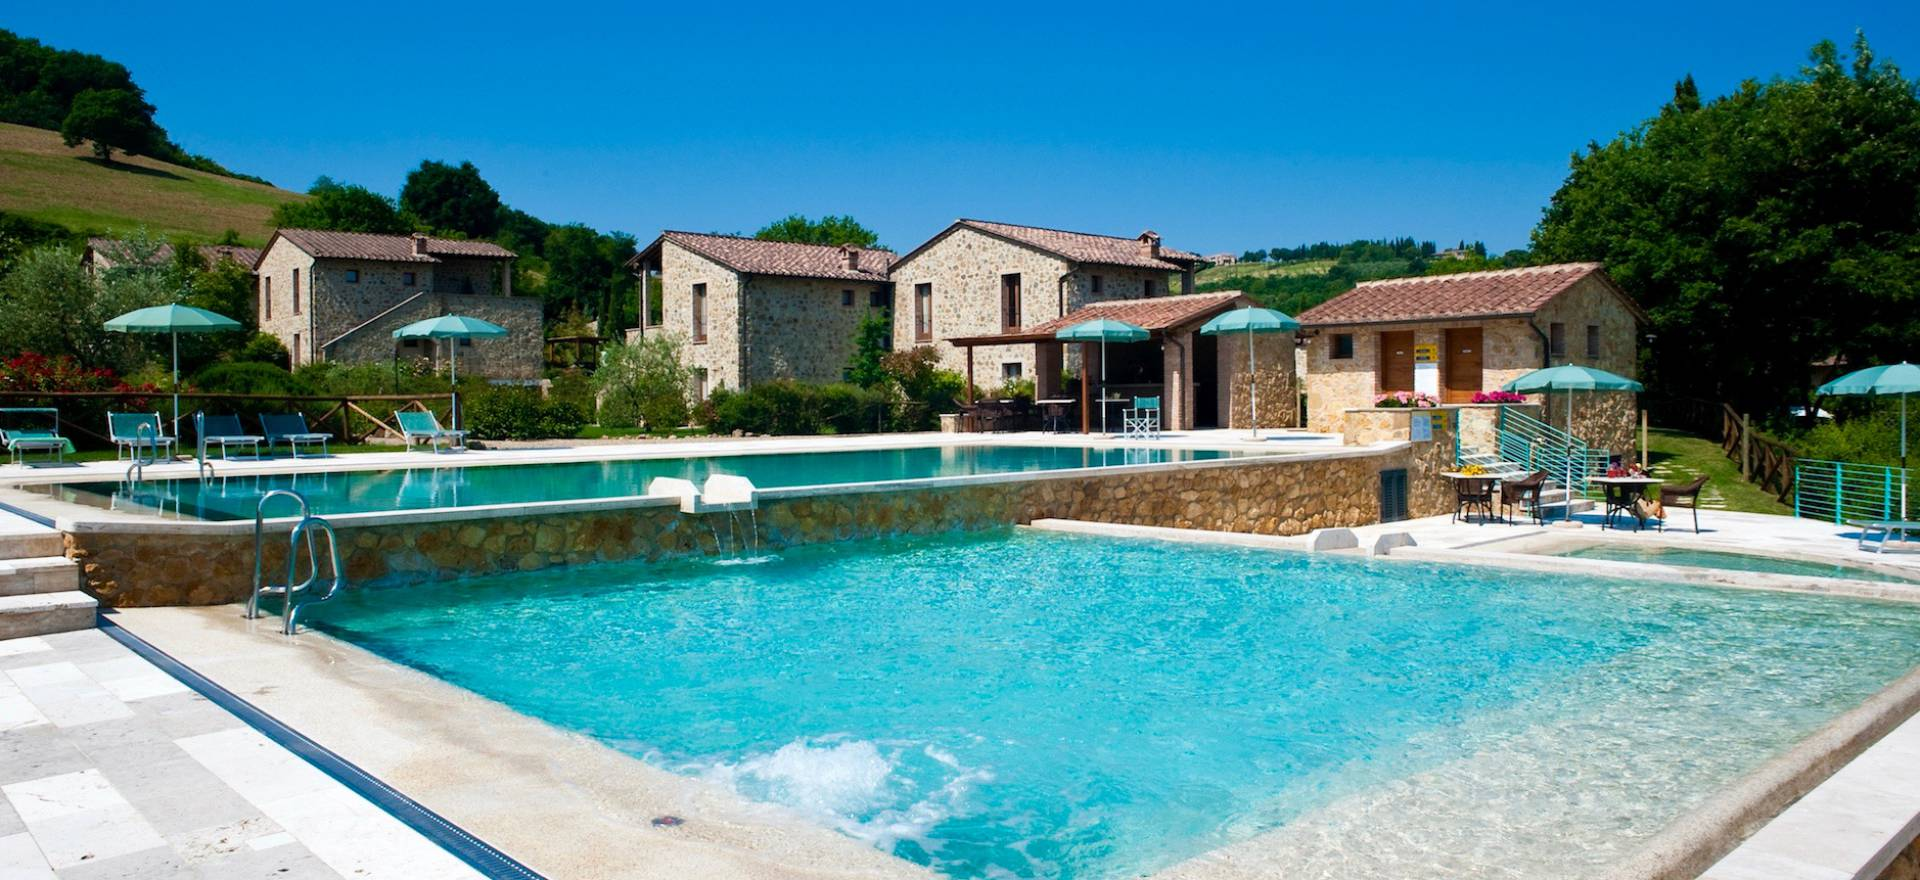 Agriturismo Tuscany Country resort in Tuscany with restaurant and beautiful pool